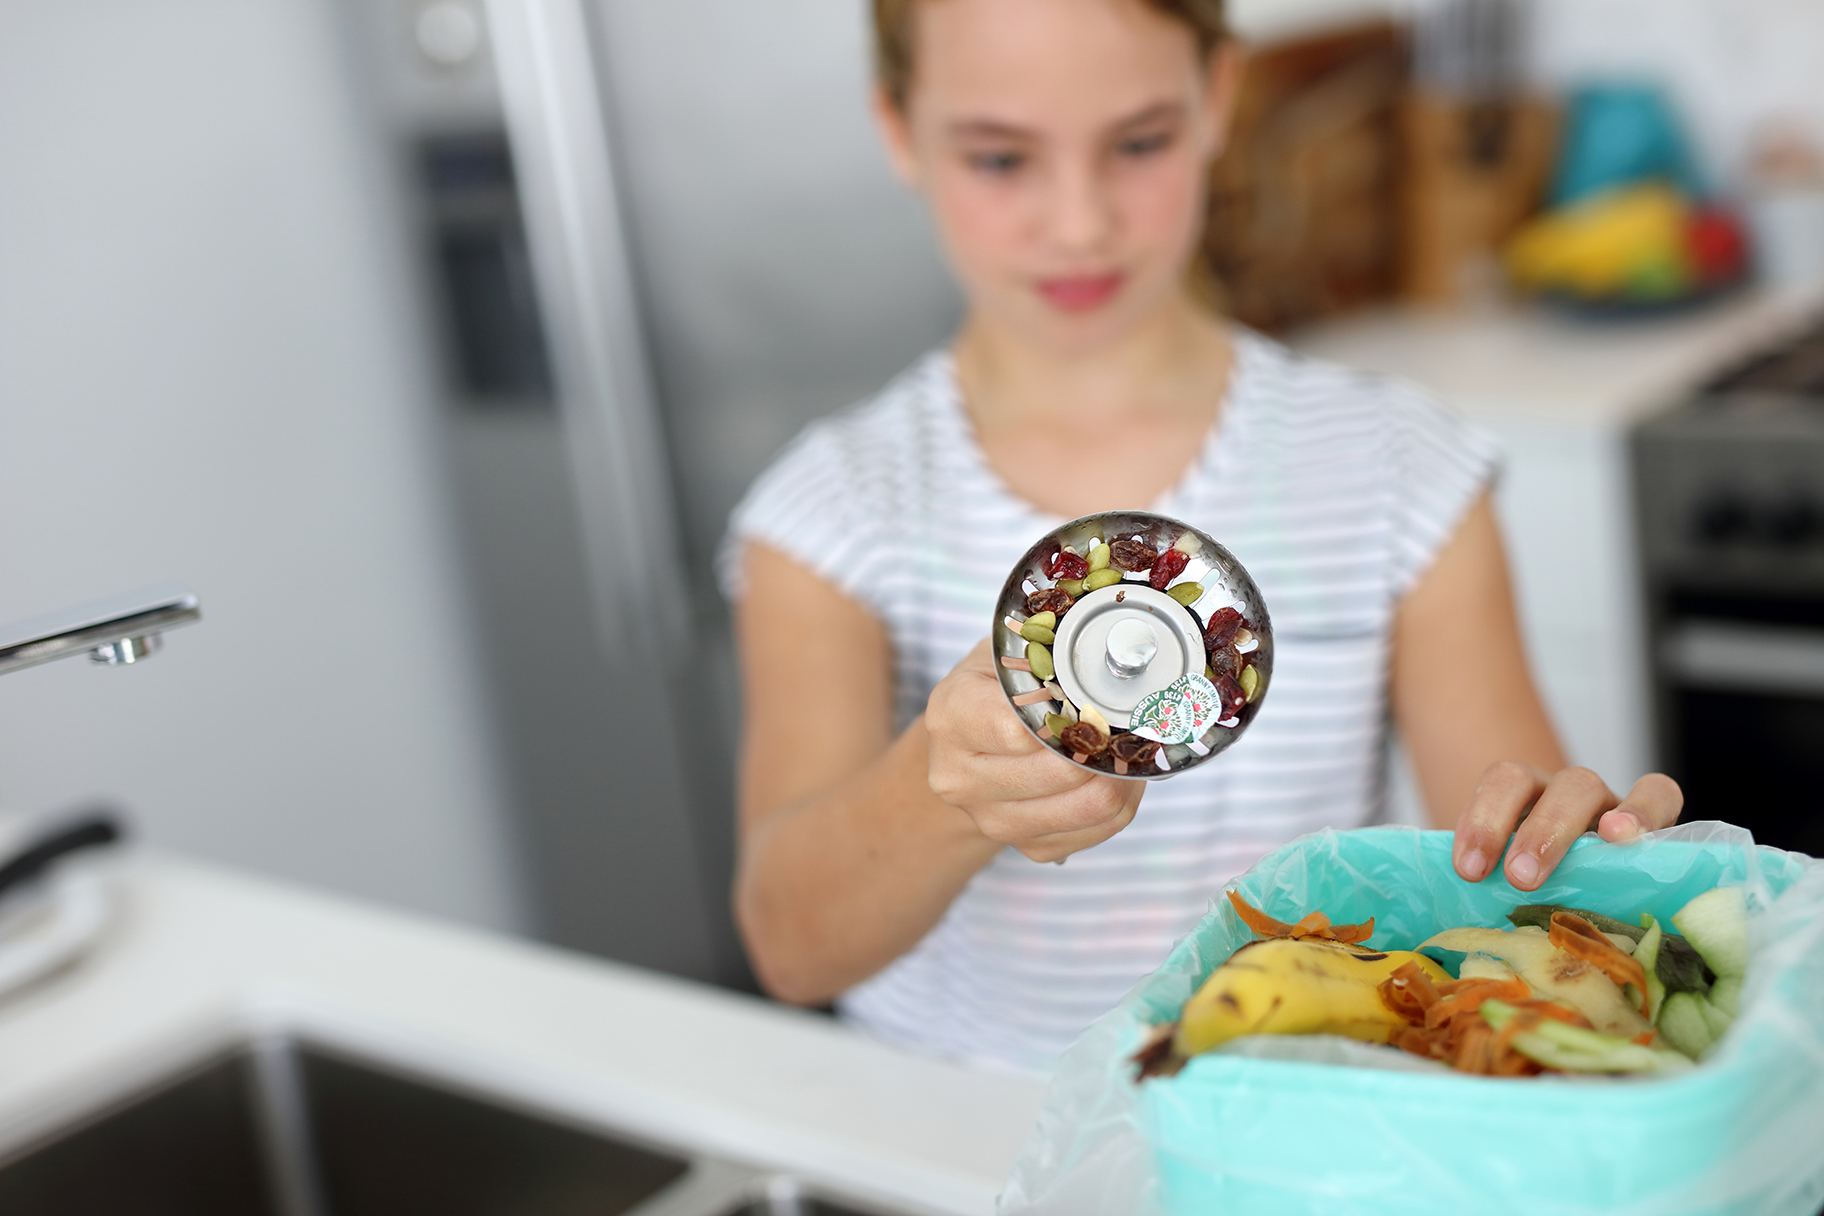 Girl emptying sink strainer full of food scraps into bin on kitchen bench